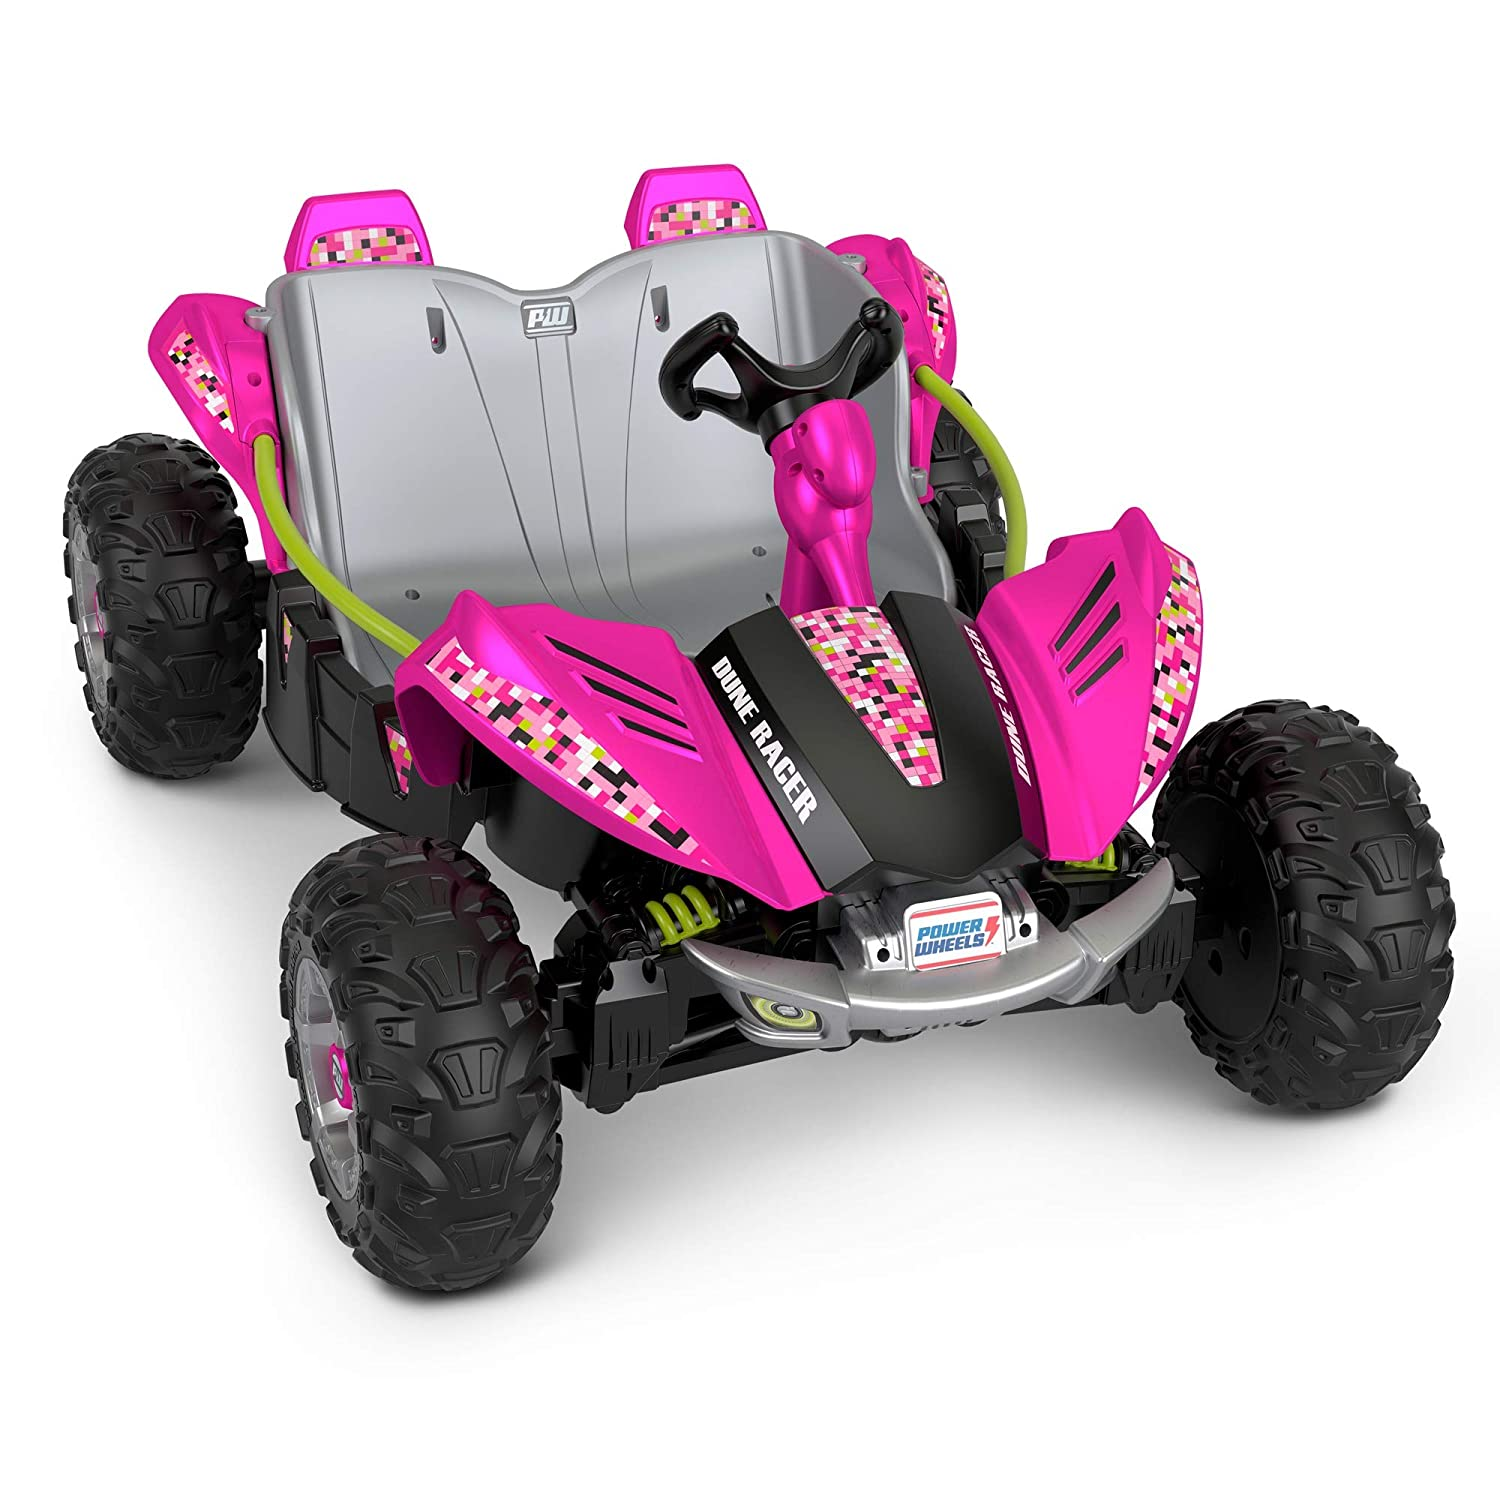 Top 8 Best Power Wheels For 3 Years Old - Buyer's Guide 8